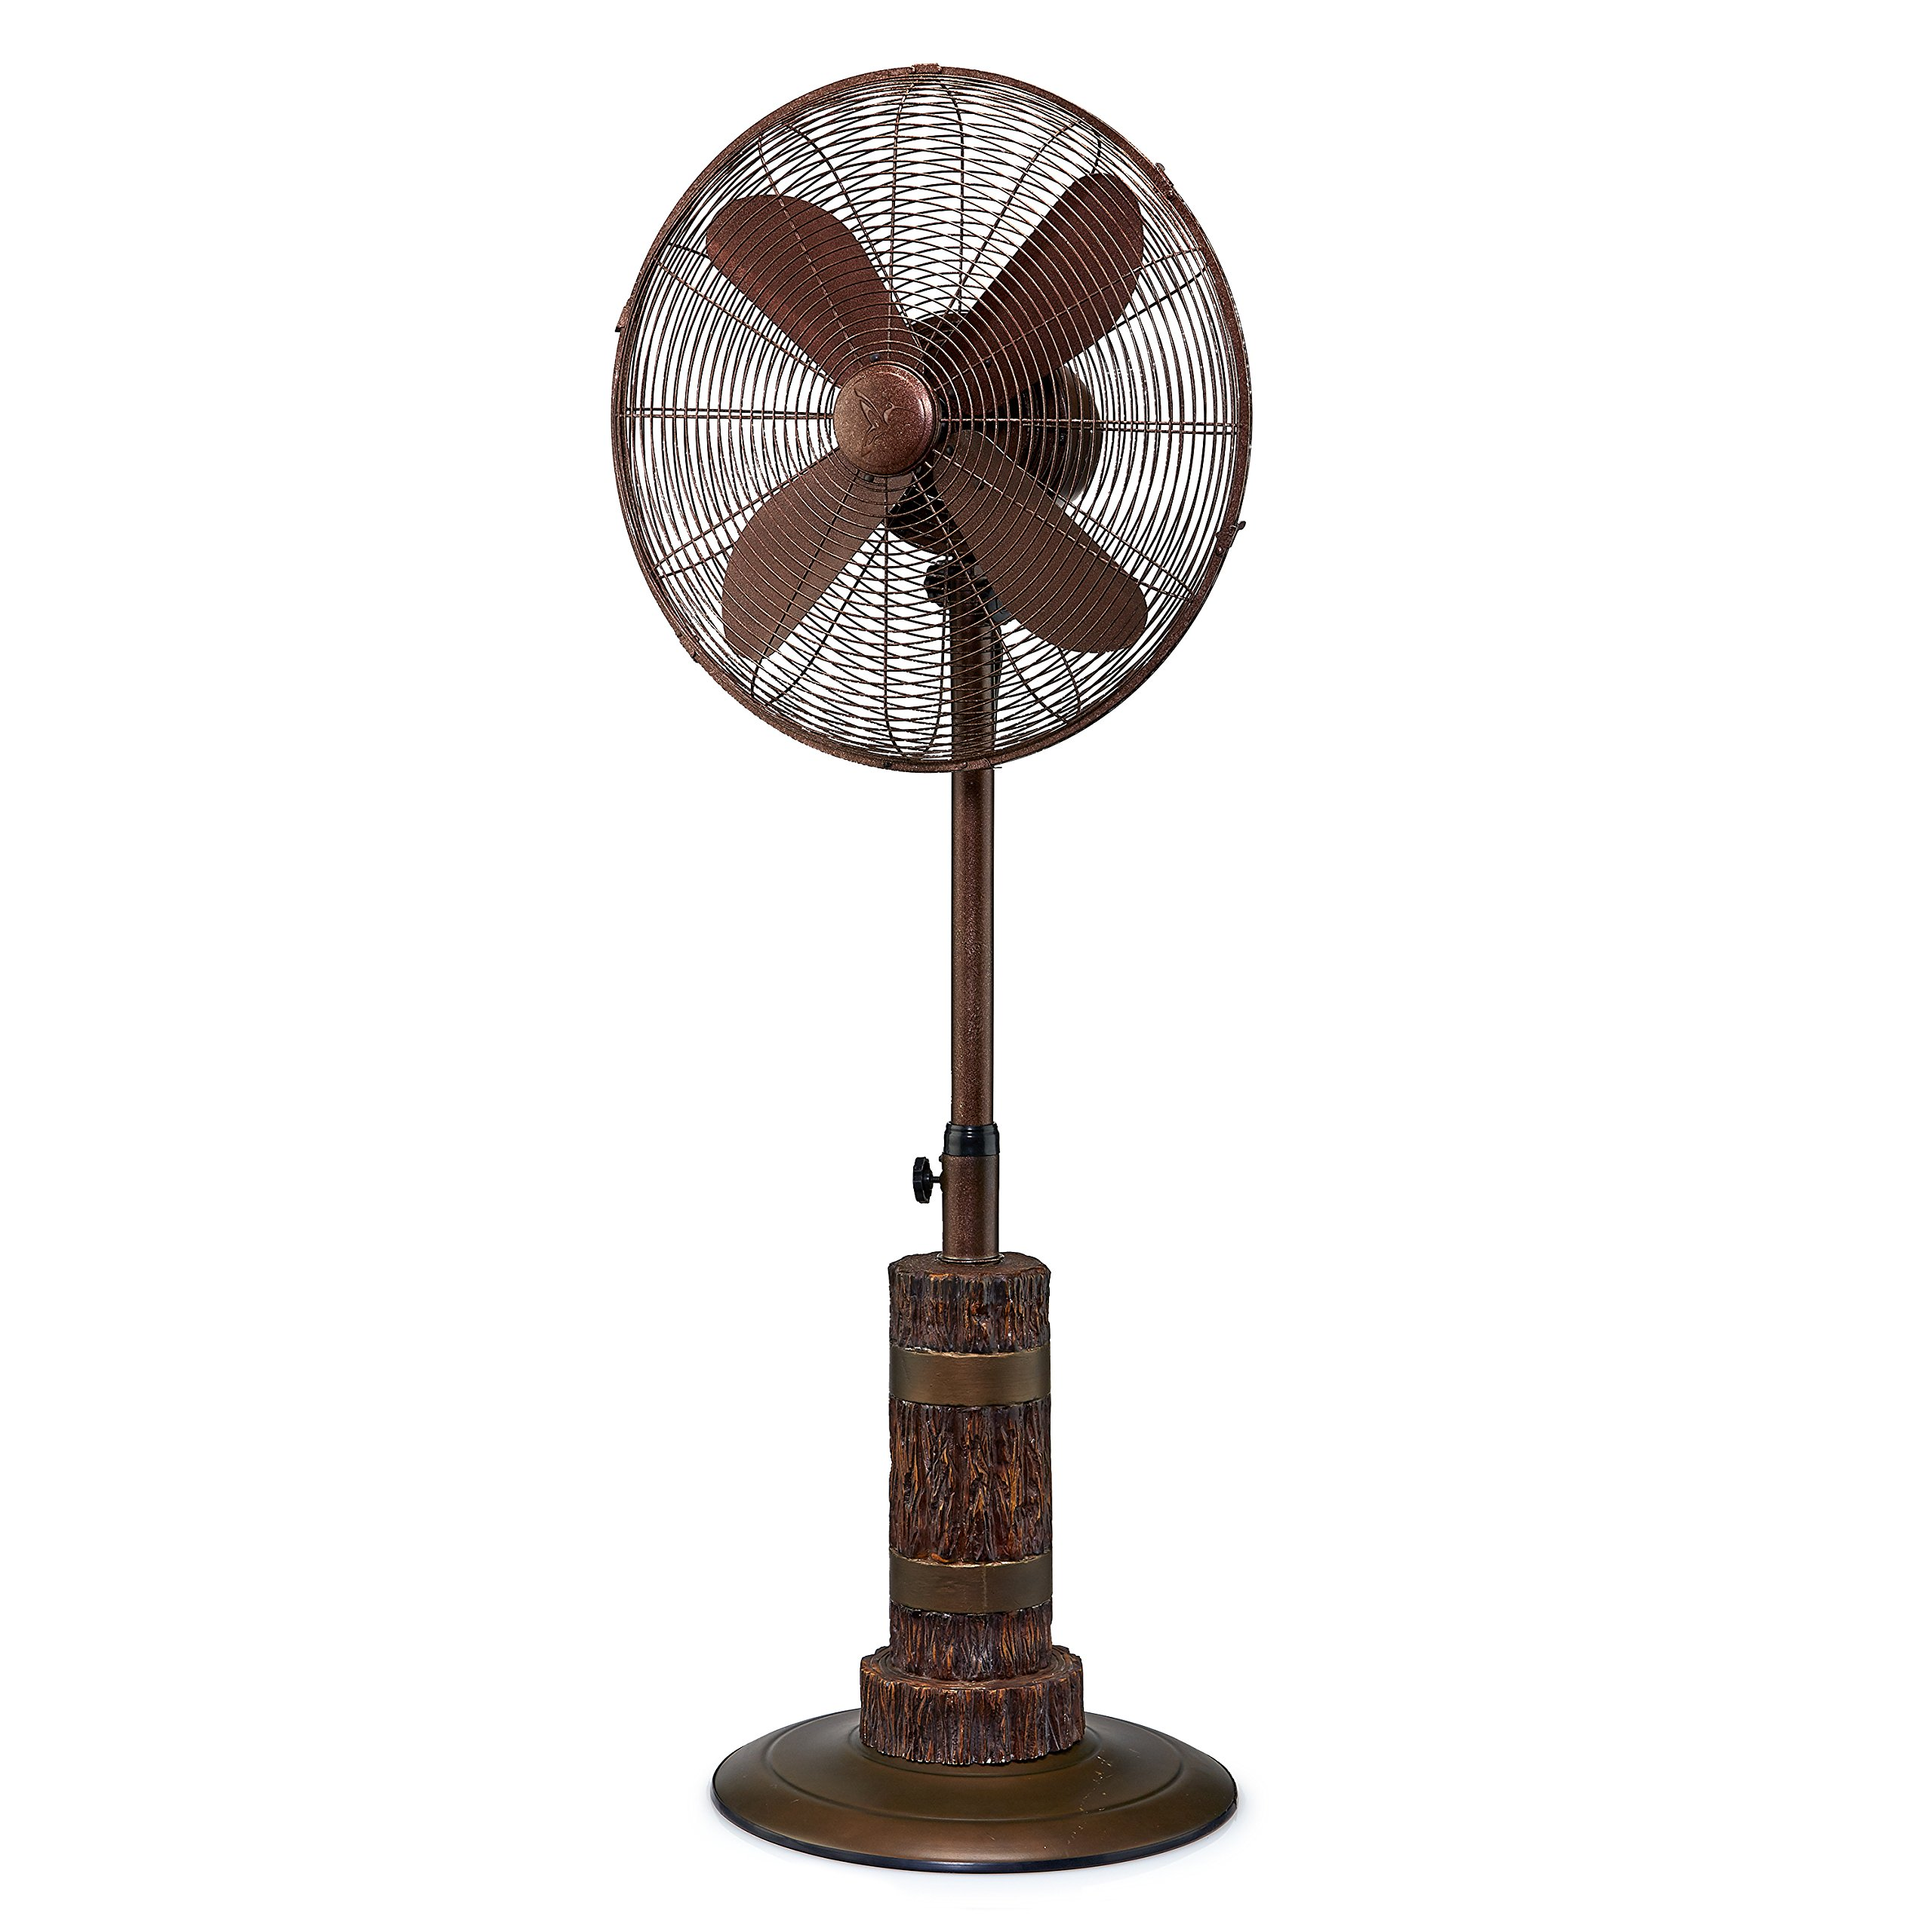 Designer Aire Indoor and Outdoor 18'' Standing Pedestal Fan - Beautiful Style Keeps You Cool All Year Round (Aspen)